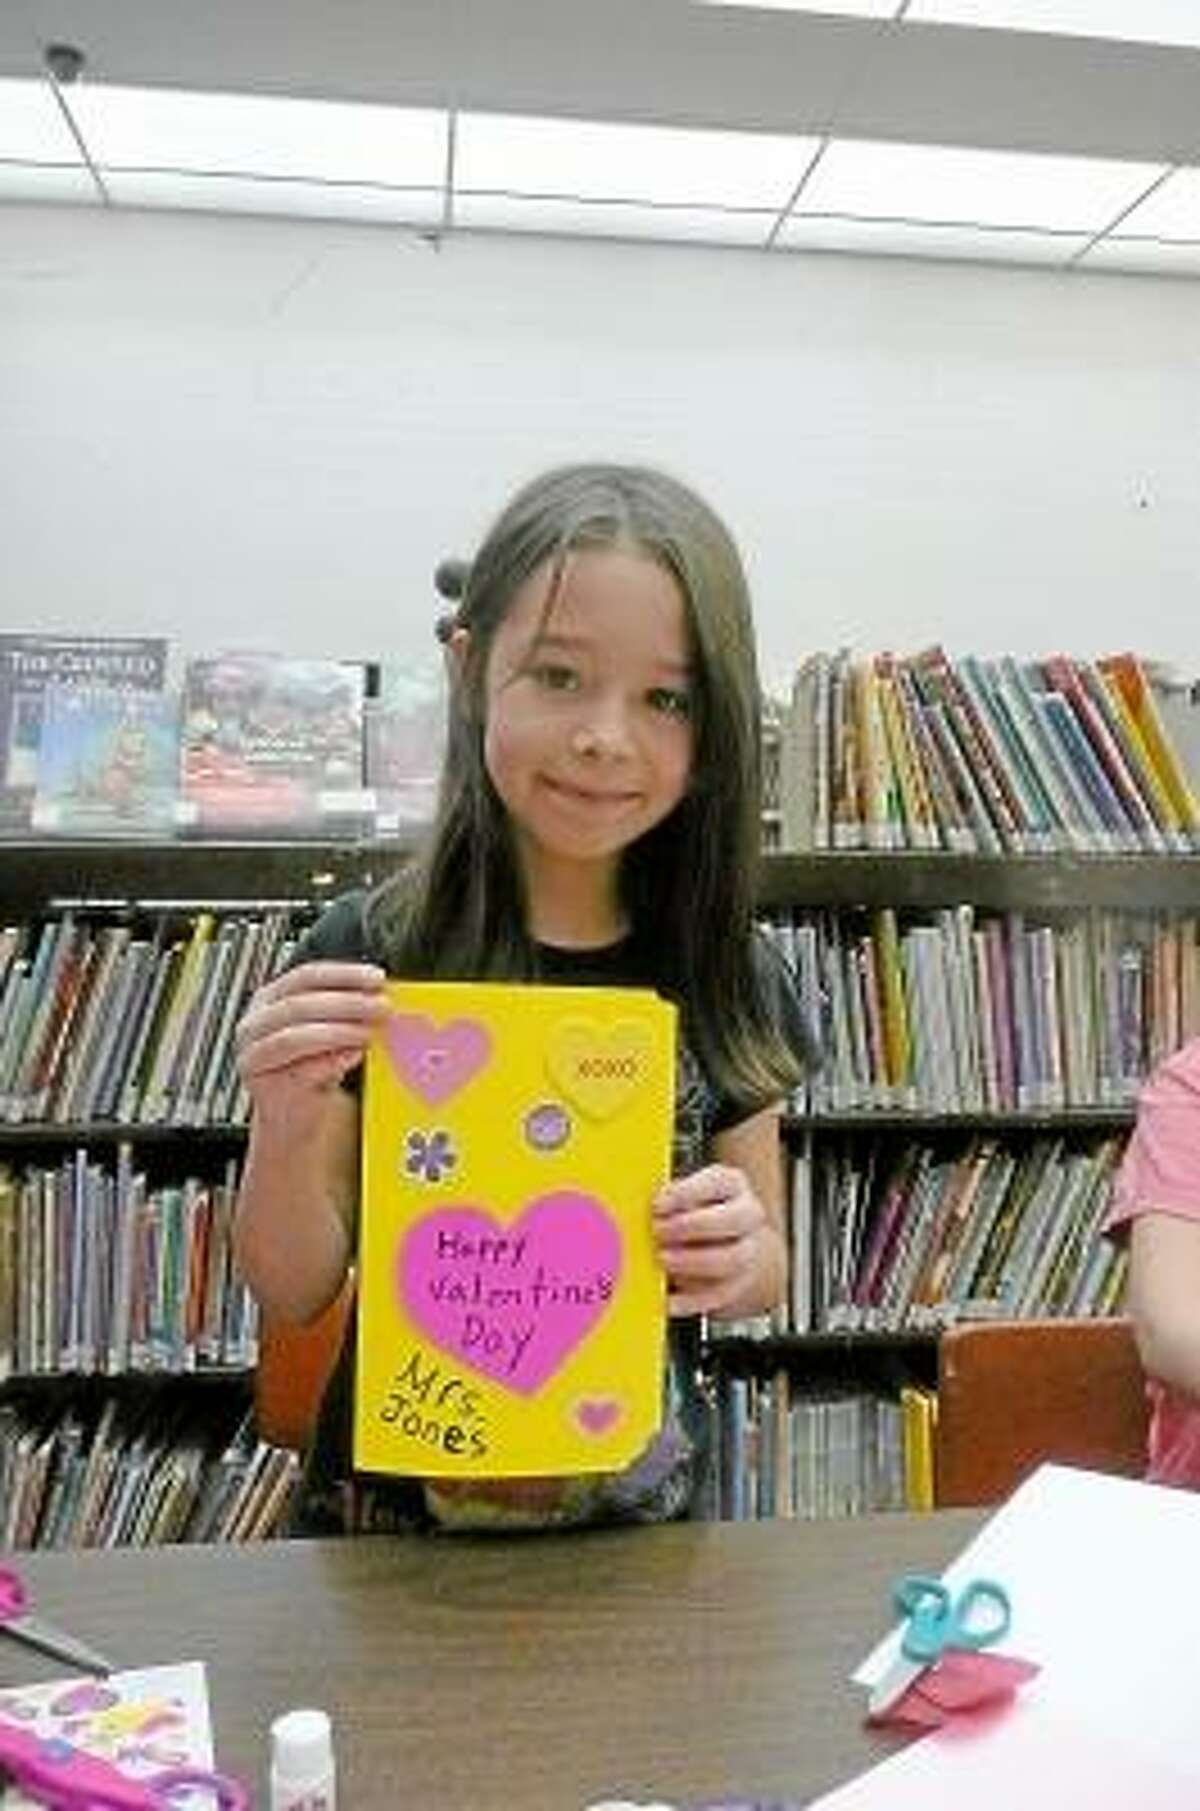 KATE HARTMAN/Register Citizen Liana Haxo, age 8, made a card for a teacher in her school.